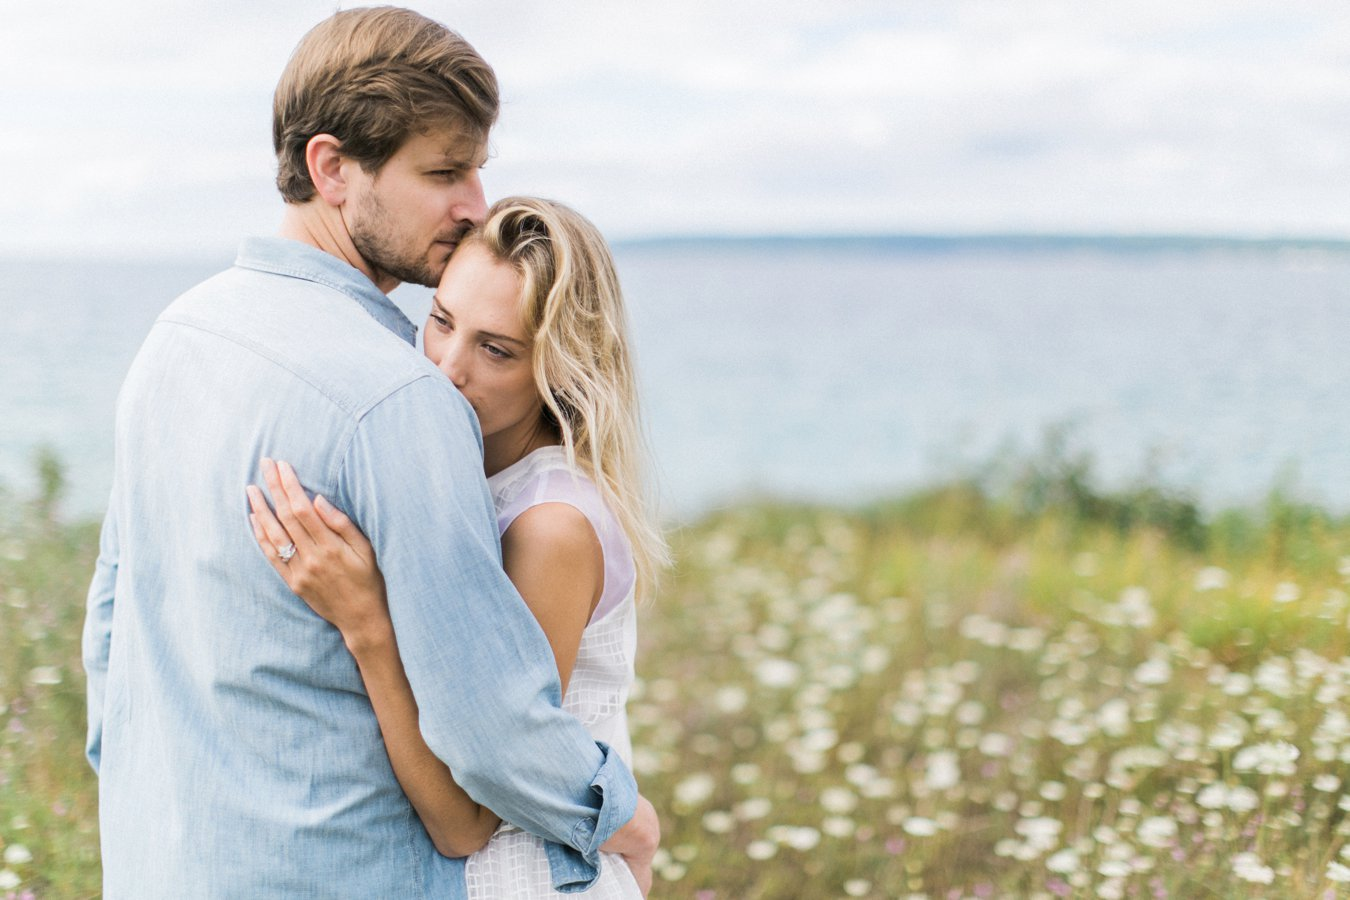 Bay Harbor Engagement Photography | Summer wildflowers | Cory Weber Photography